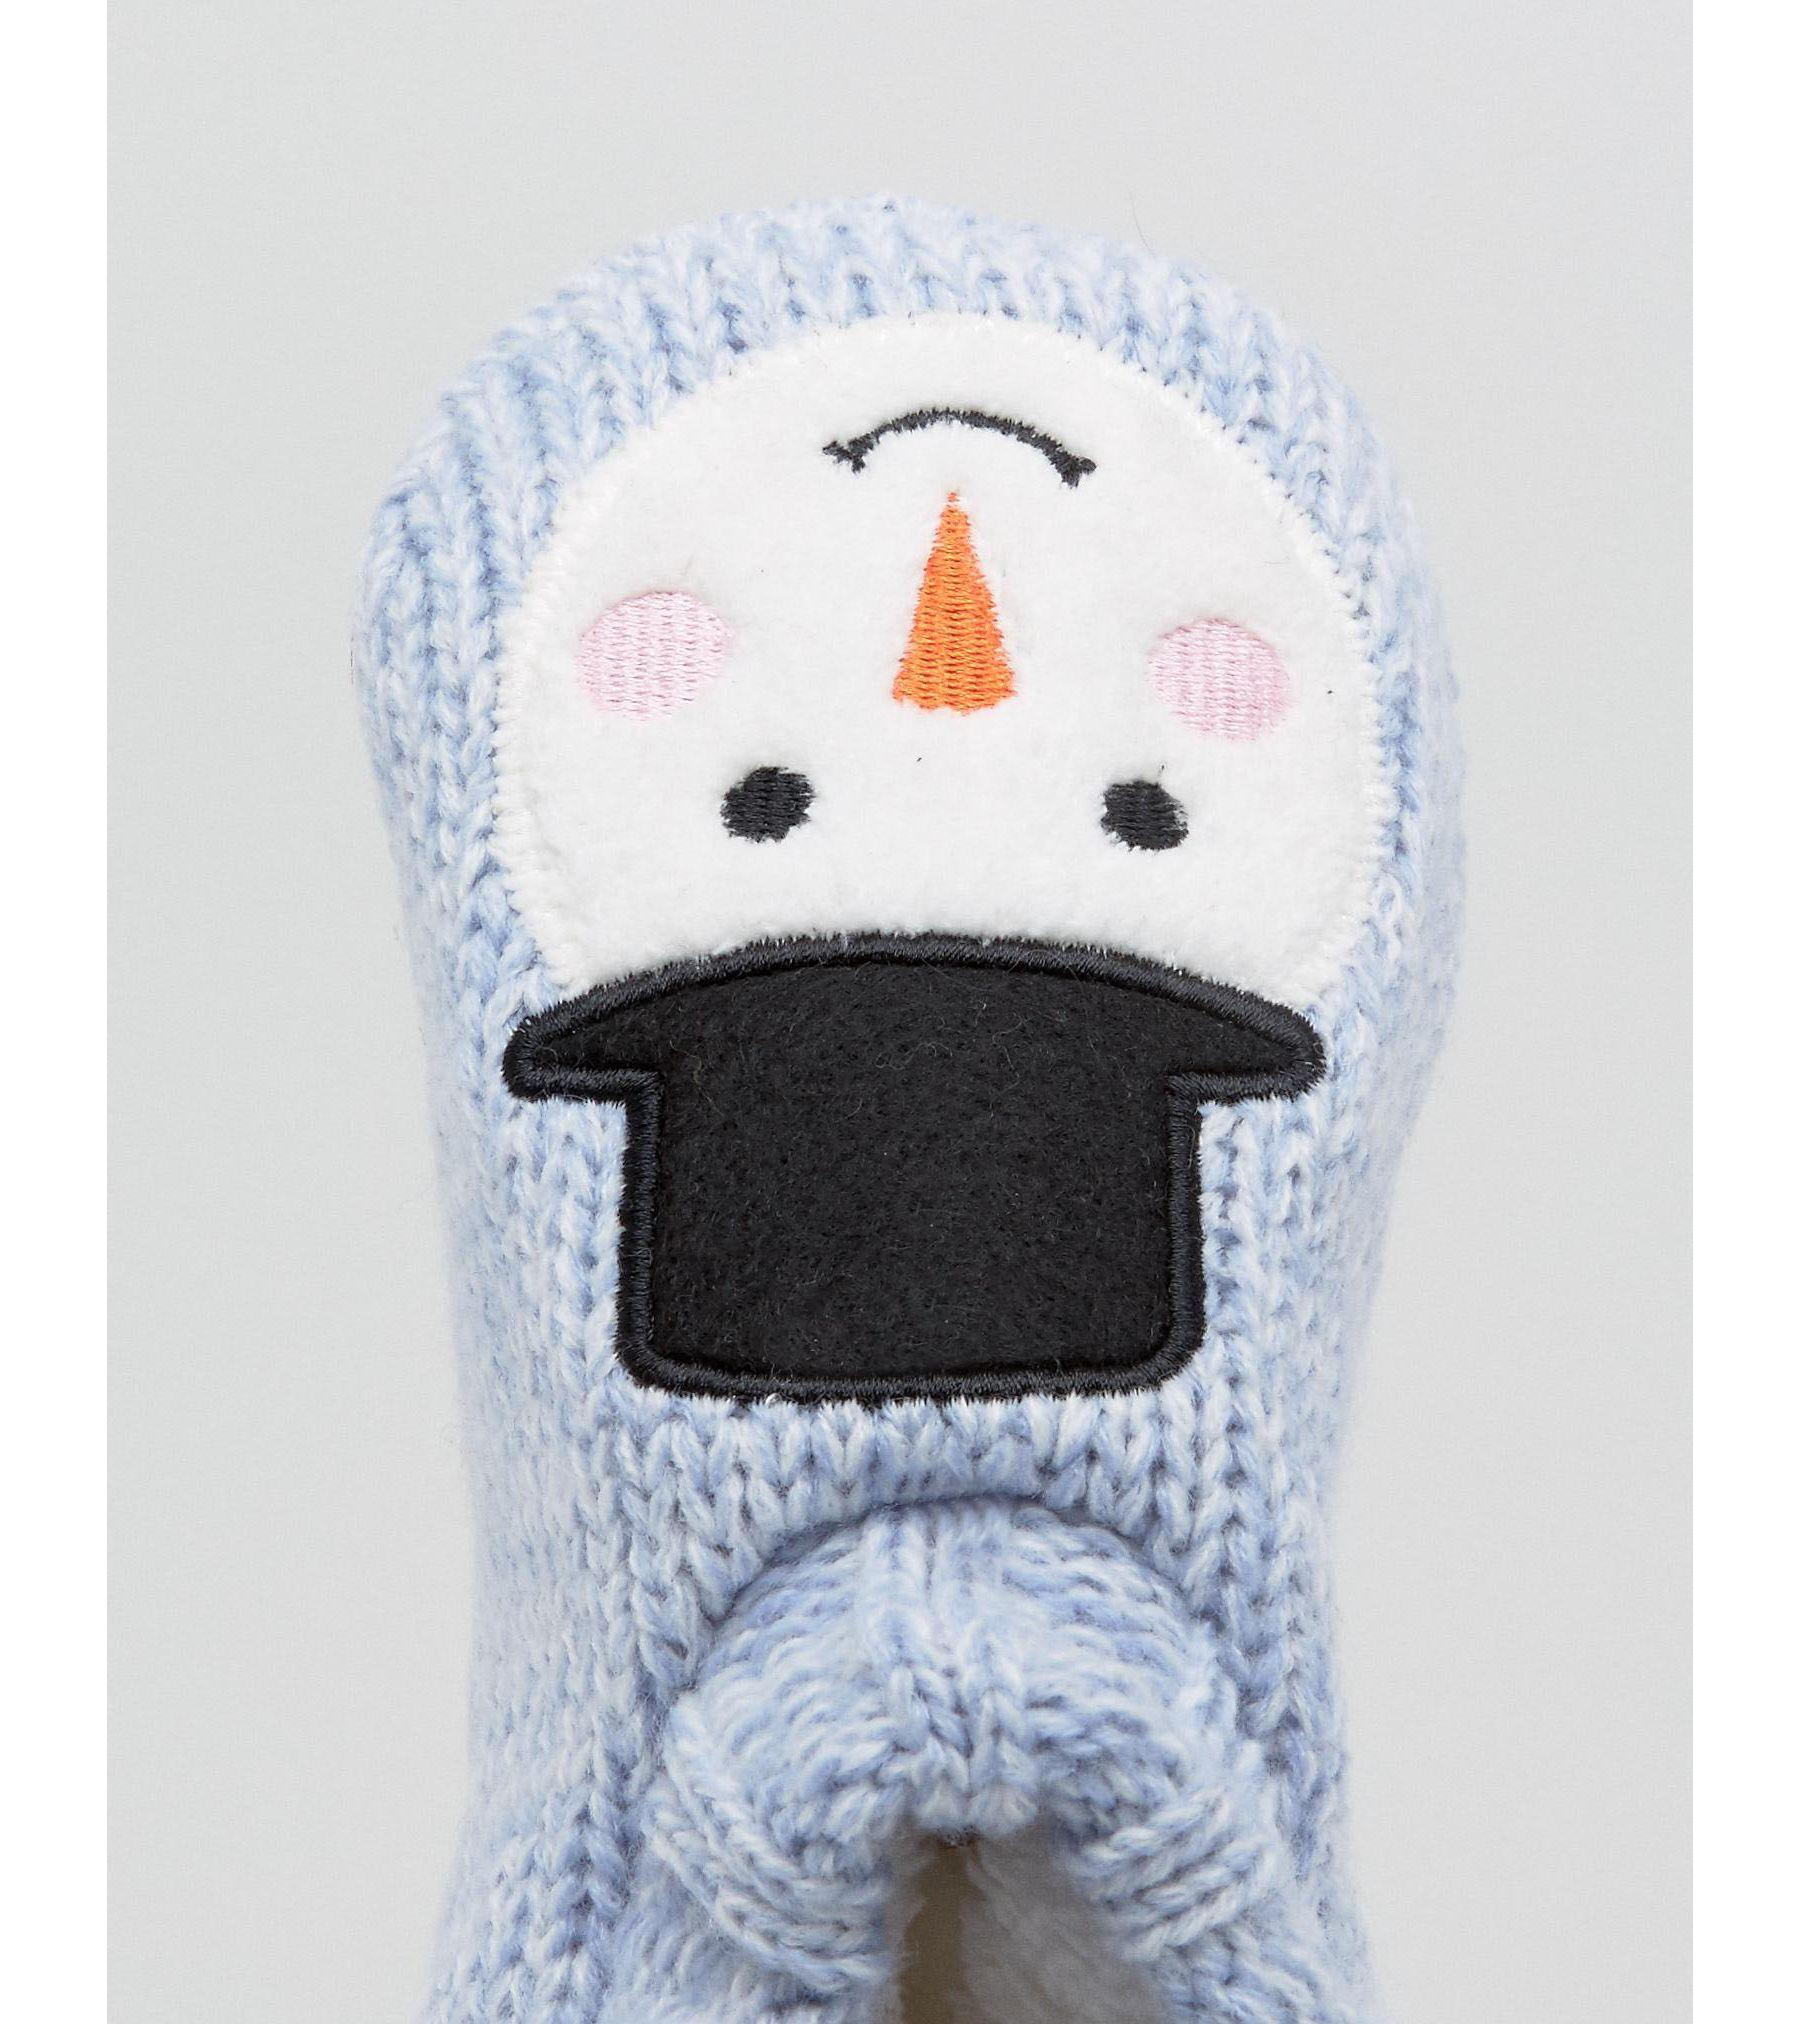 02567c7c833 Lyst - New Look Christmas Snowman Slipper Boot in Blue